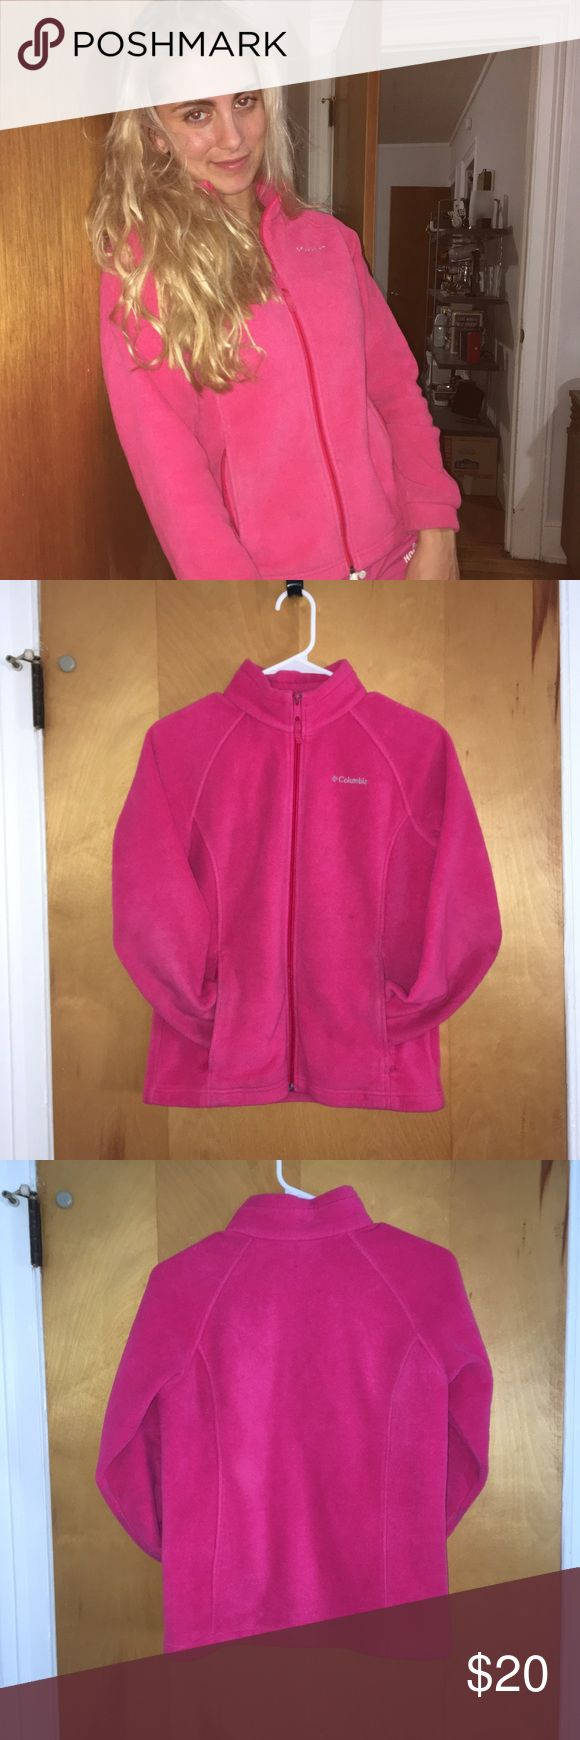 Columbia Pink fleece zip up! 💕 Good condition, very warm and flattering, only issues are a little chipped paint on zipper and writing on the inside name patch. Not noticeable when you're wearing it. Nice color! Kids Large fits like a Small on women Columbia Jackets & Coats